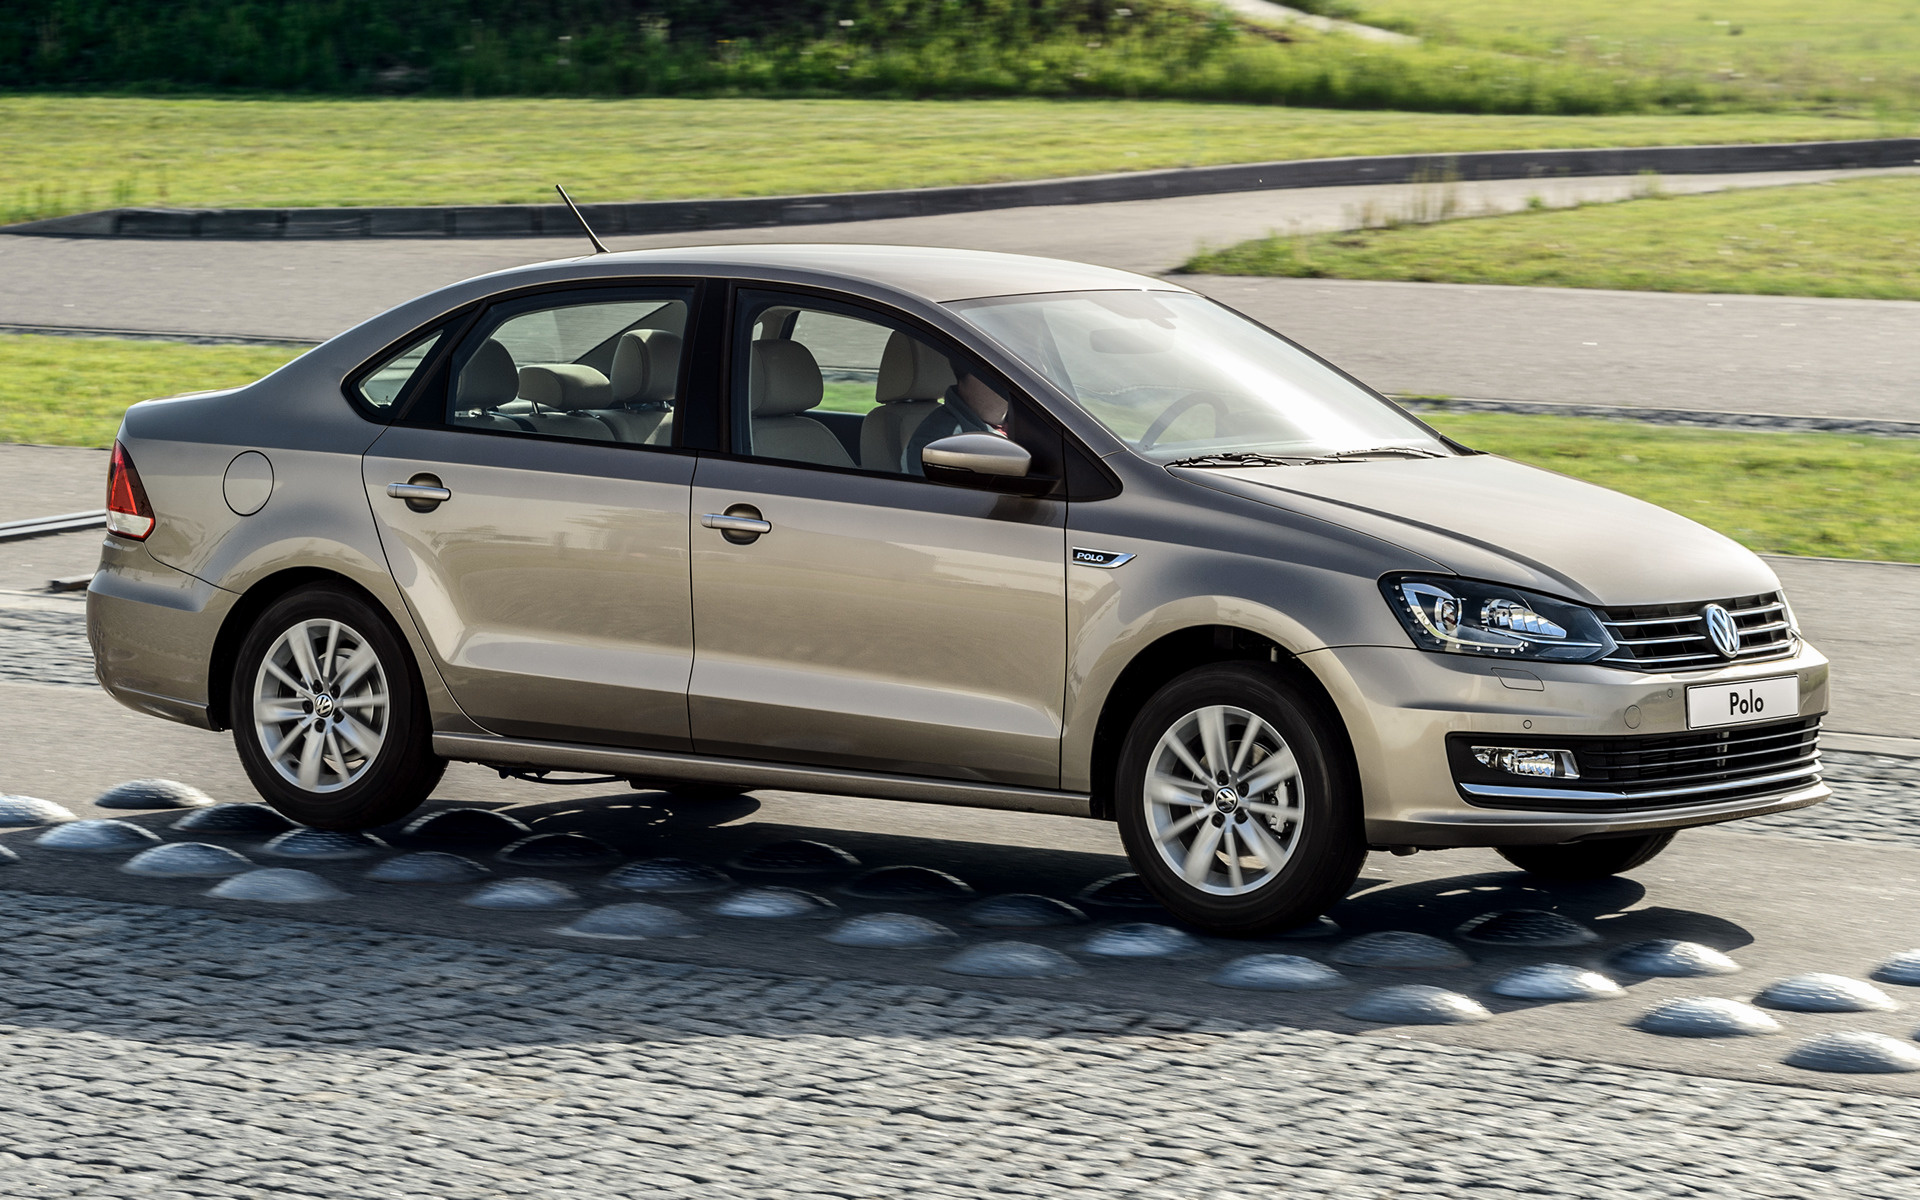 2015 Volkswagen Polo Sedan (RU) - Wallpapers and HD Images ...